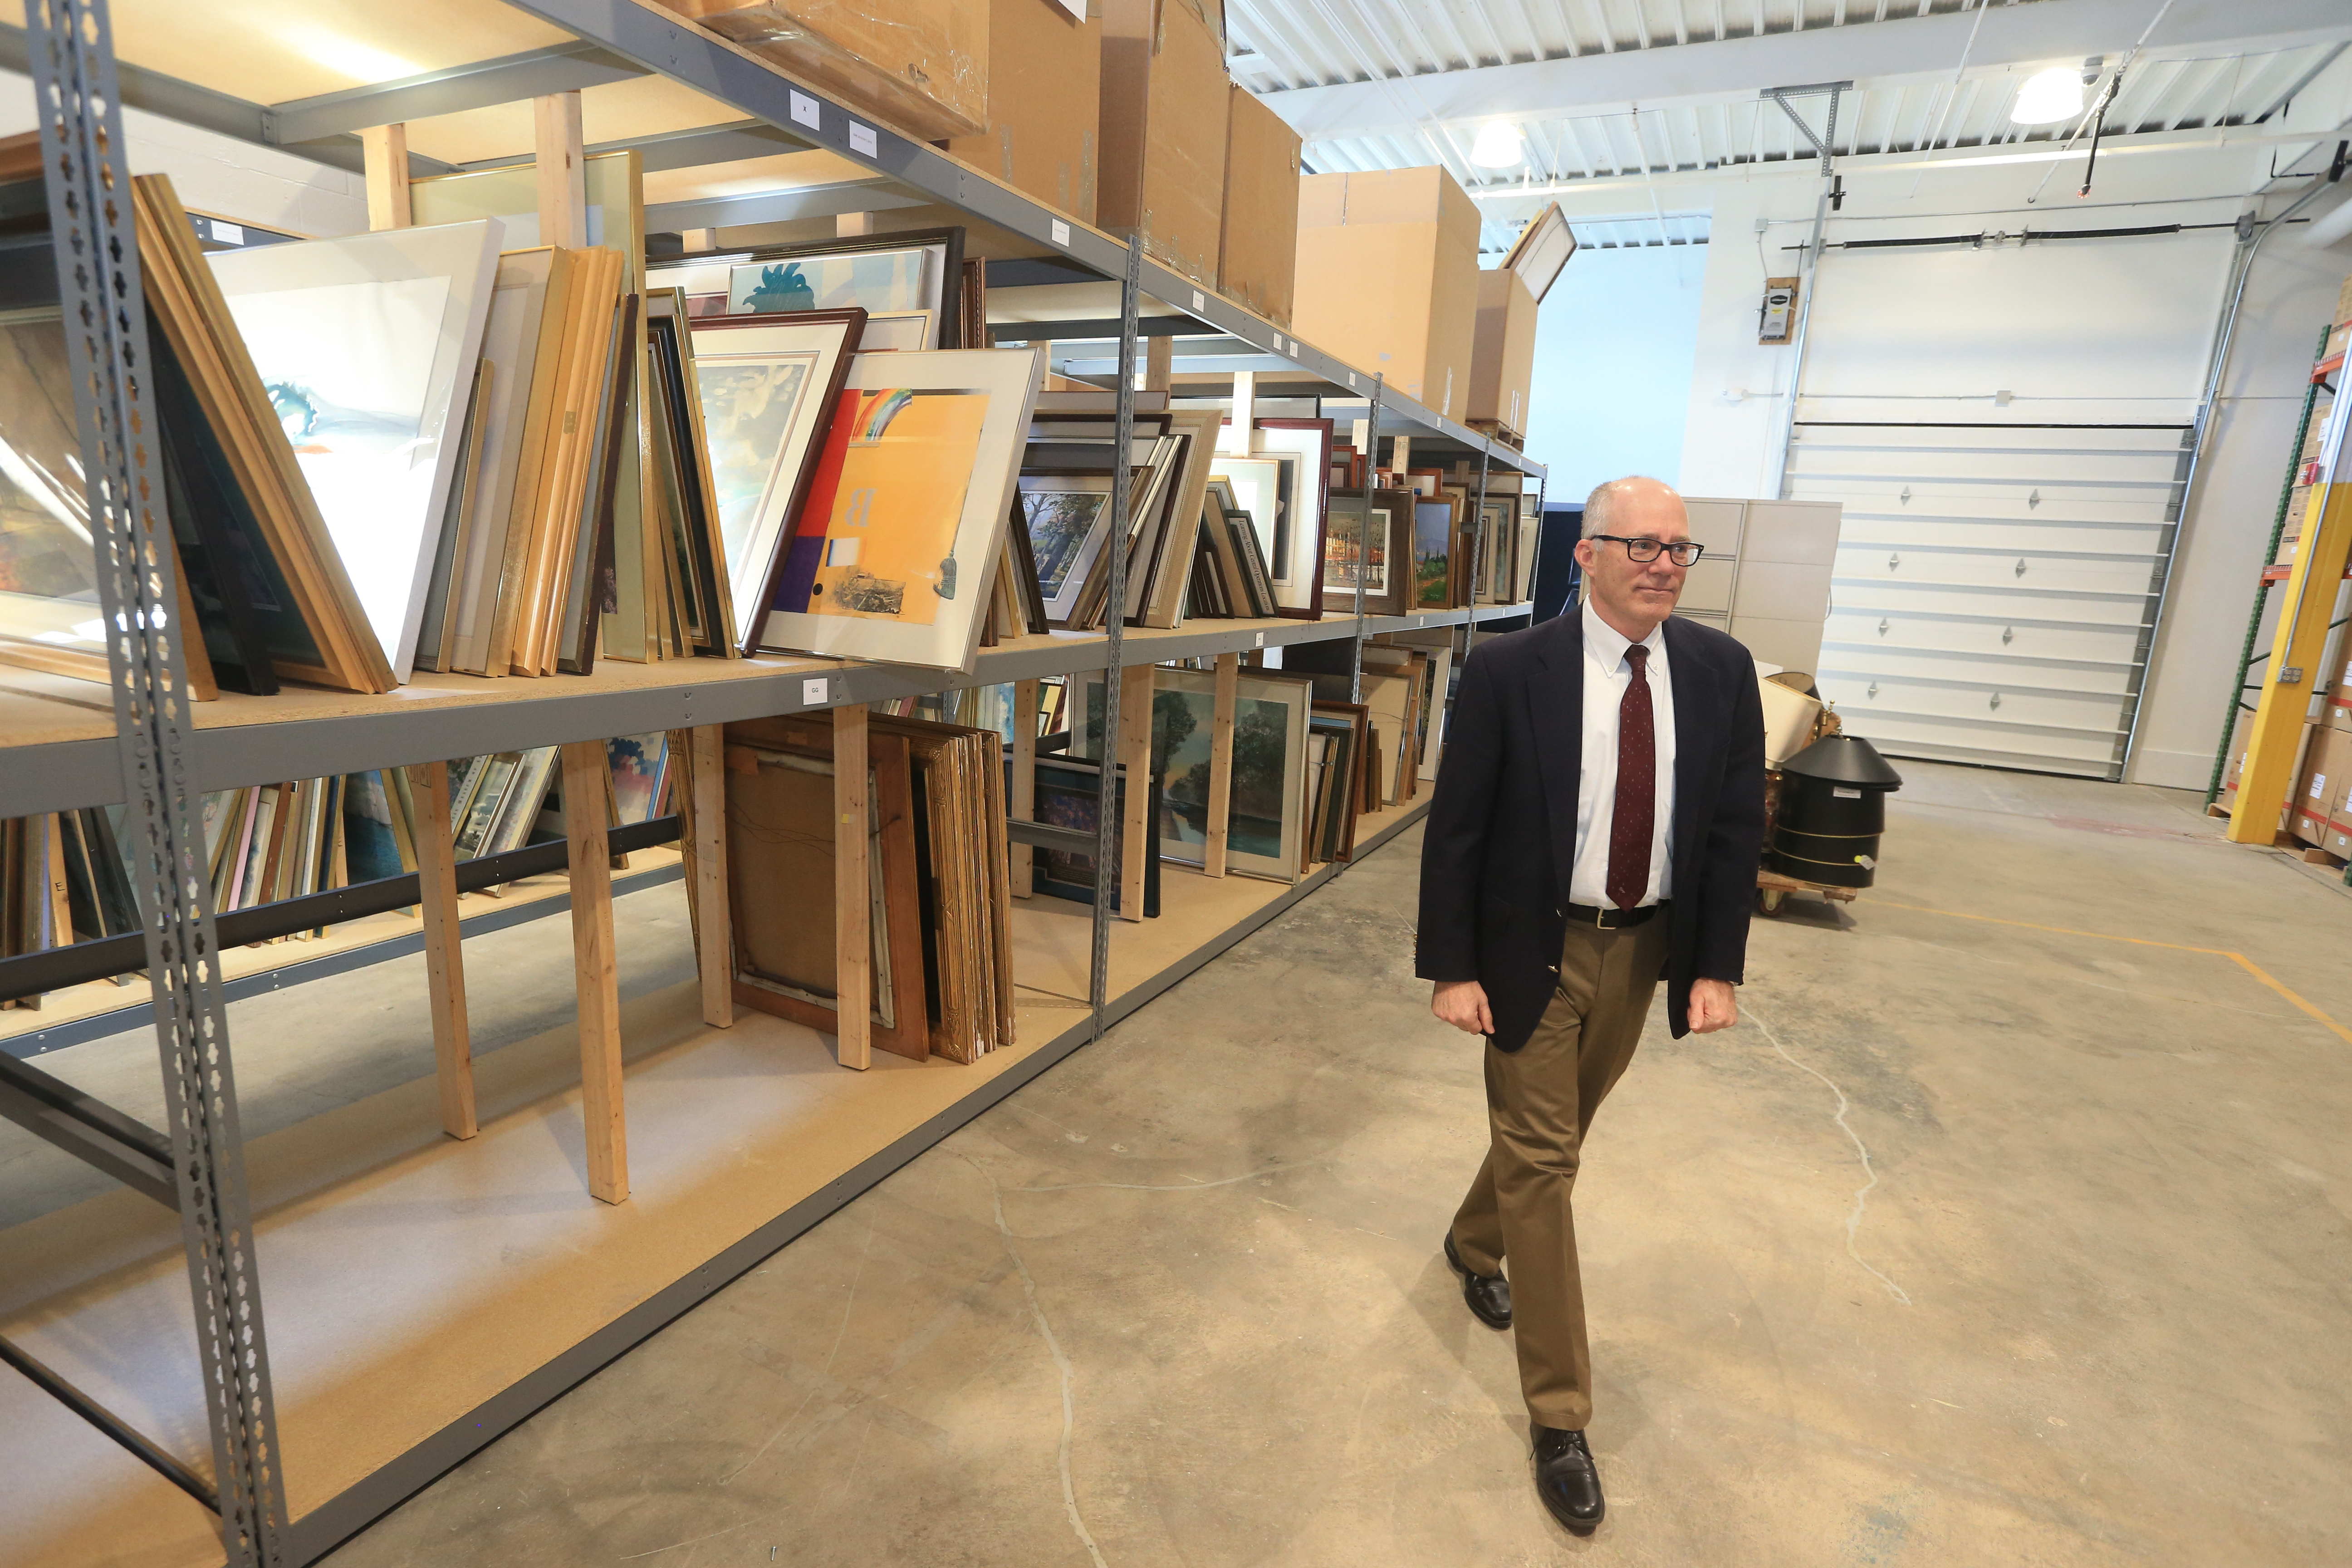 Keith Belanger, M&T senior vice president of corporate services, looks at warehoused paintings and prints for sale at the  M&T Corporate ReUse store. (John Hickey/Buffalo News)